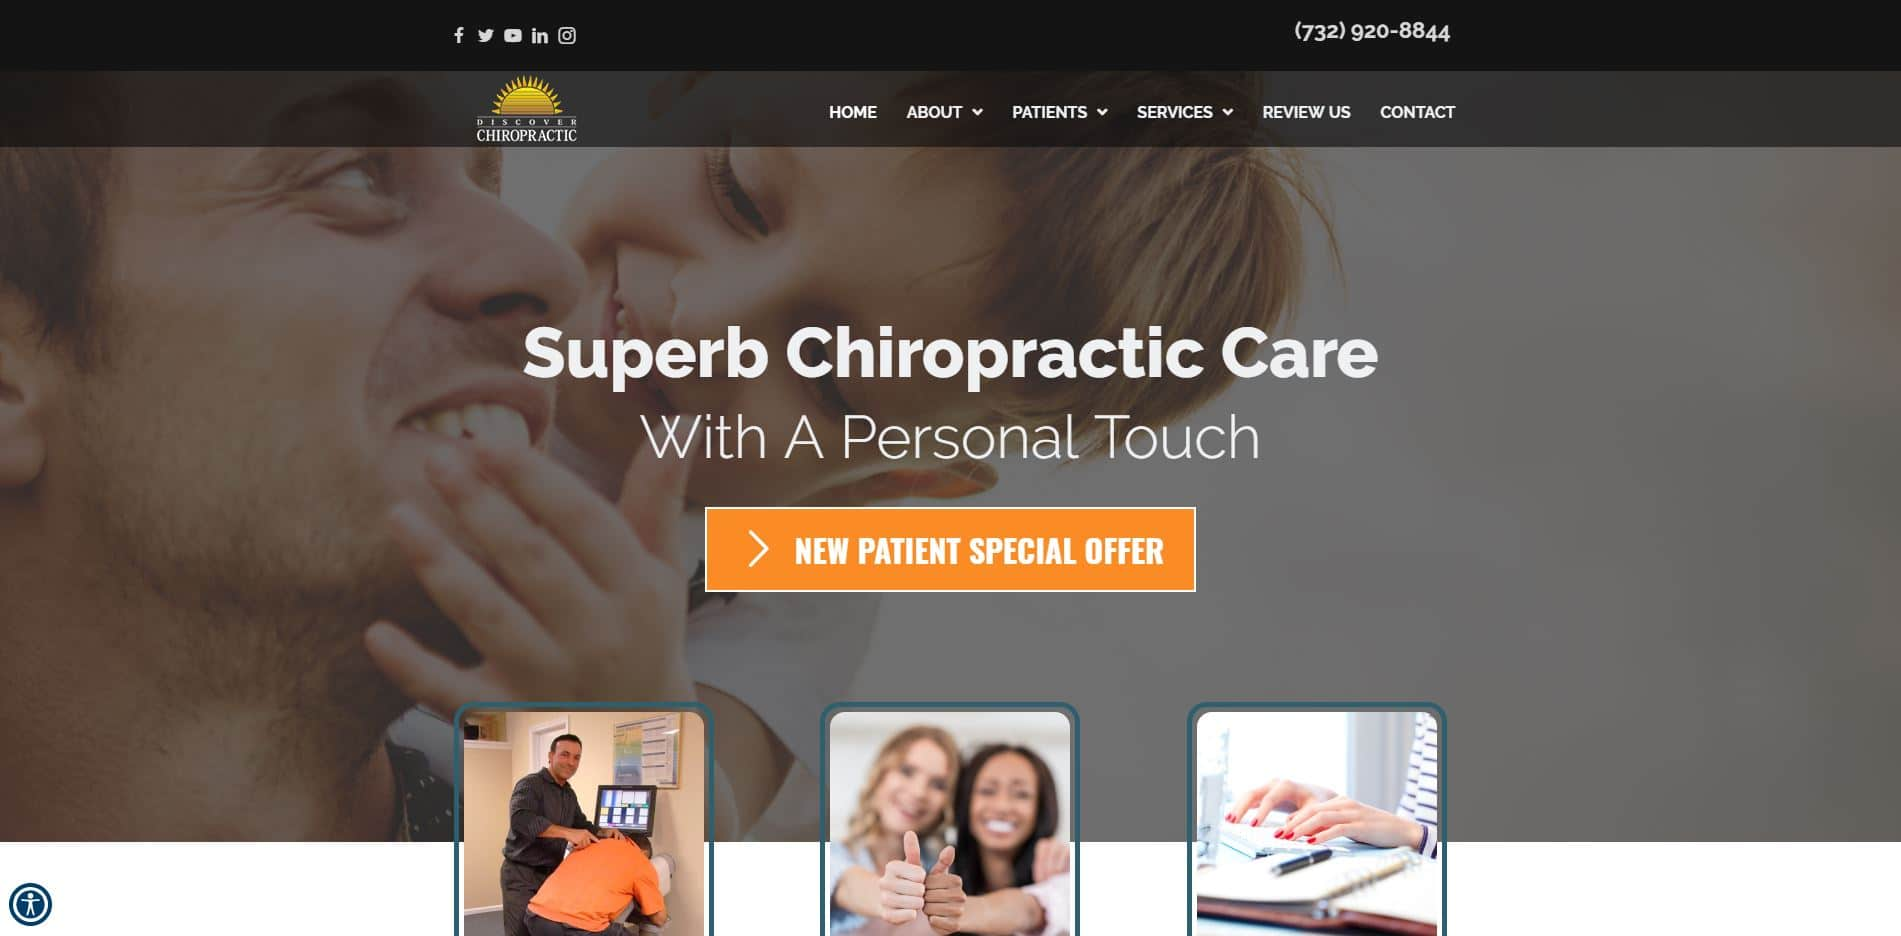 Chiropractor in Brick Township